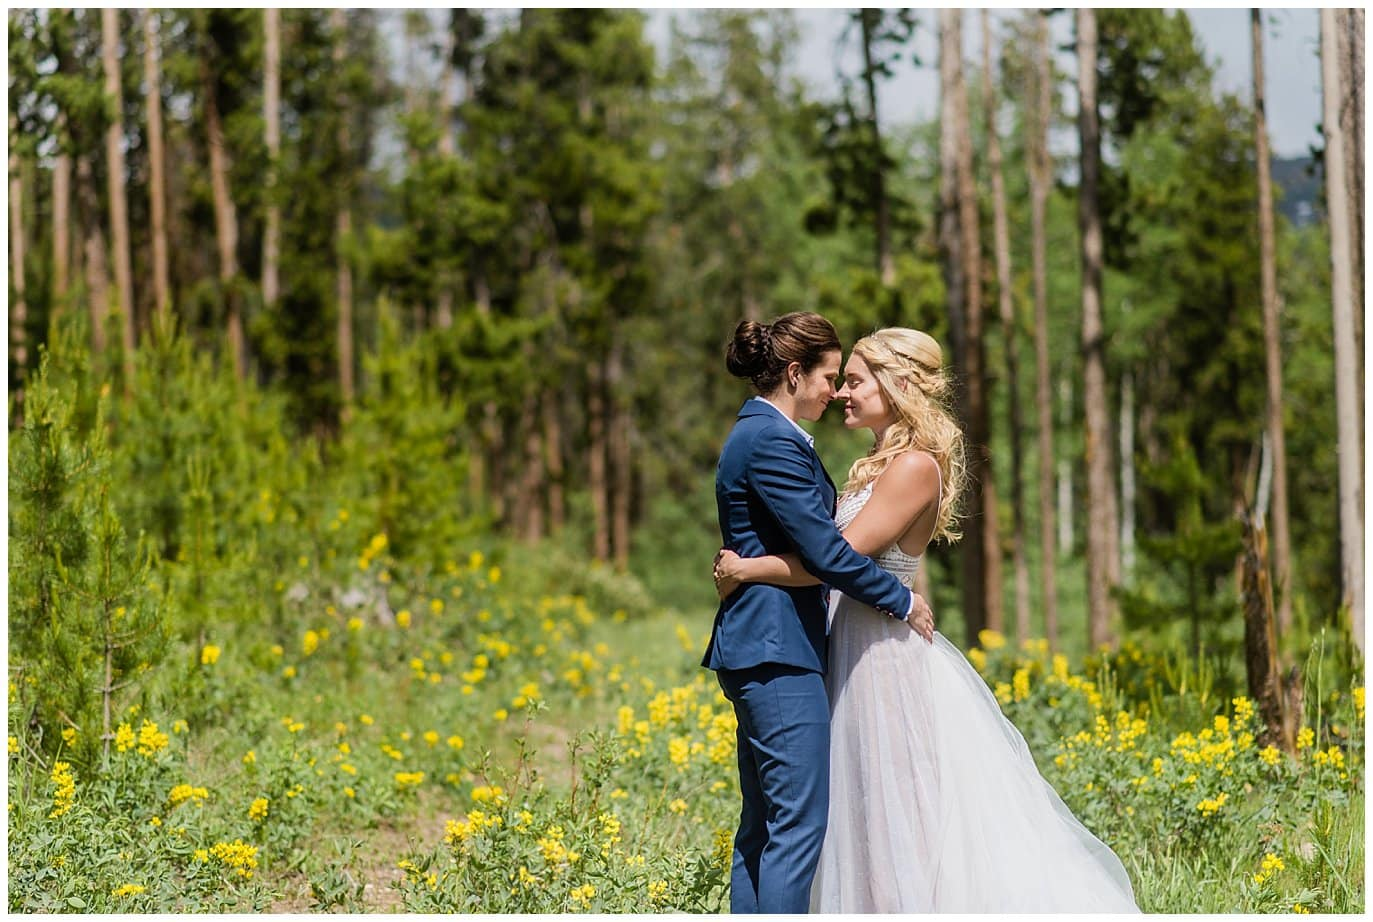 Two brides in Winter Park wildflowers photo